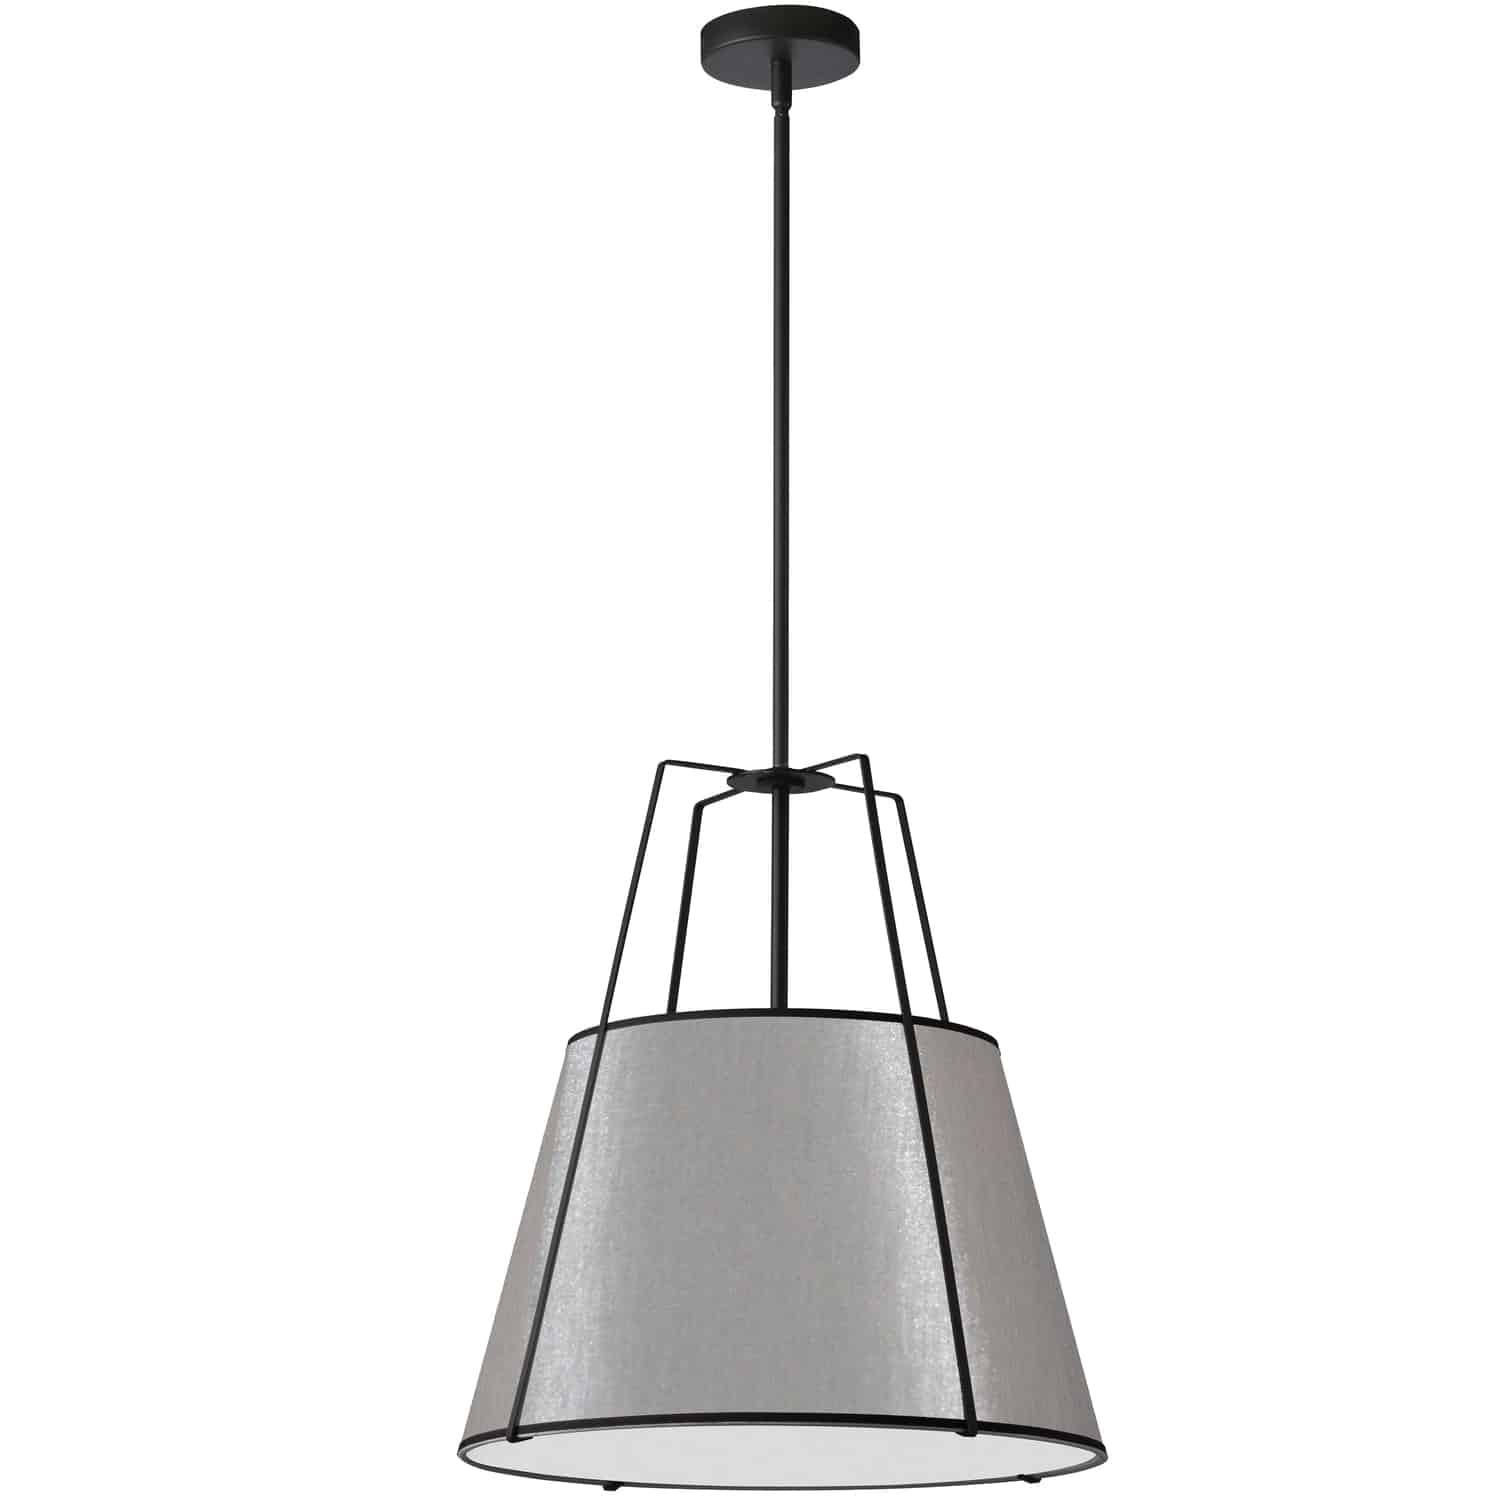 1 Light Trapezoid Pendant Black Grey Shade with 790 Diffuser